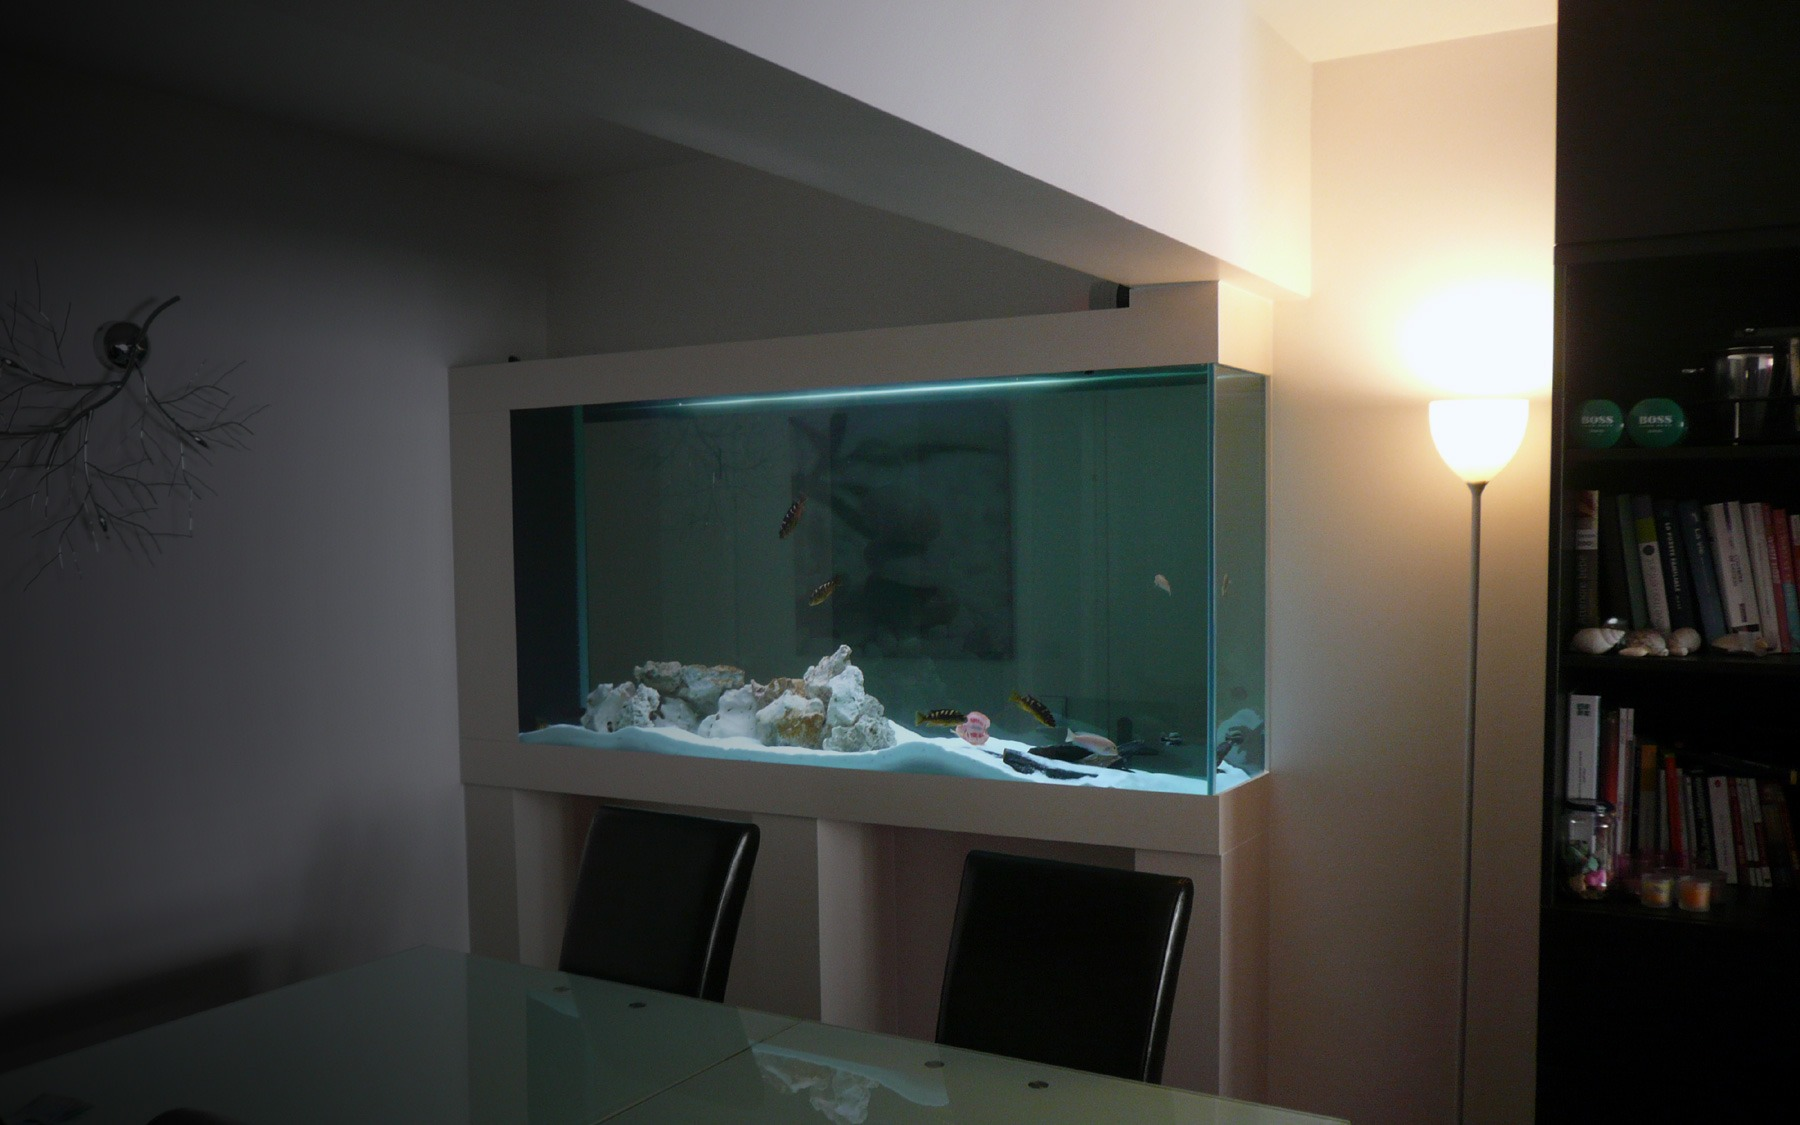 aquarium sur mesure de s paration oc an d 39 interieur. Black Bedroom Furniture Sets. Home Design Ideas